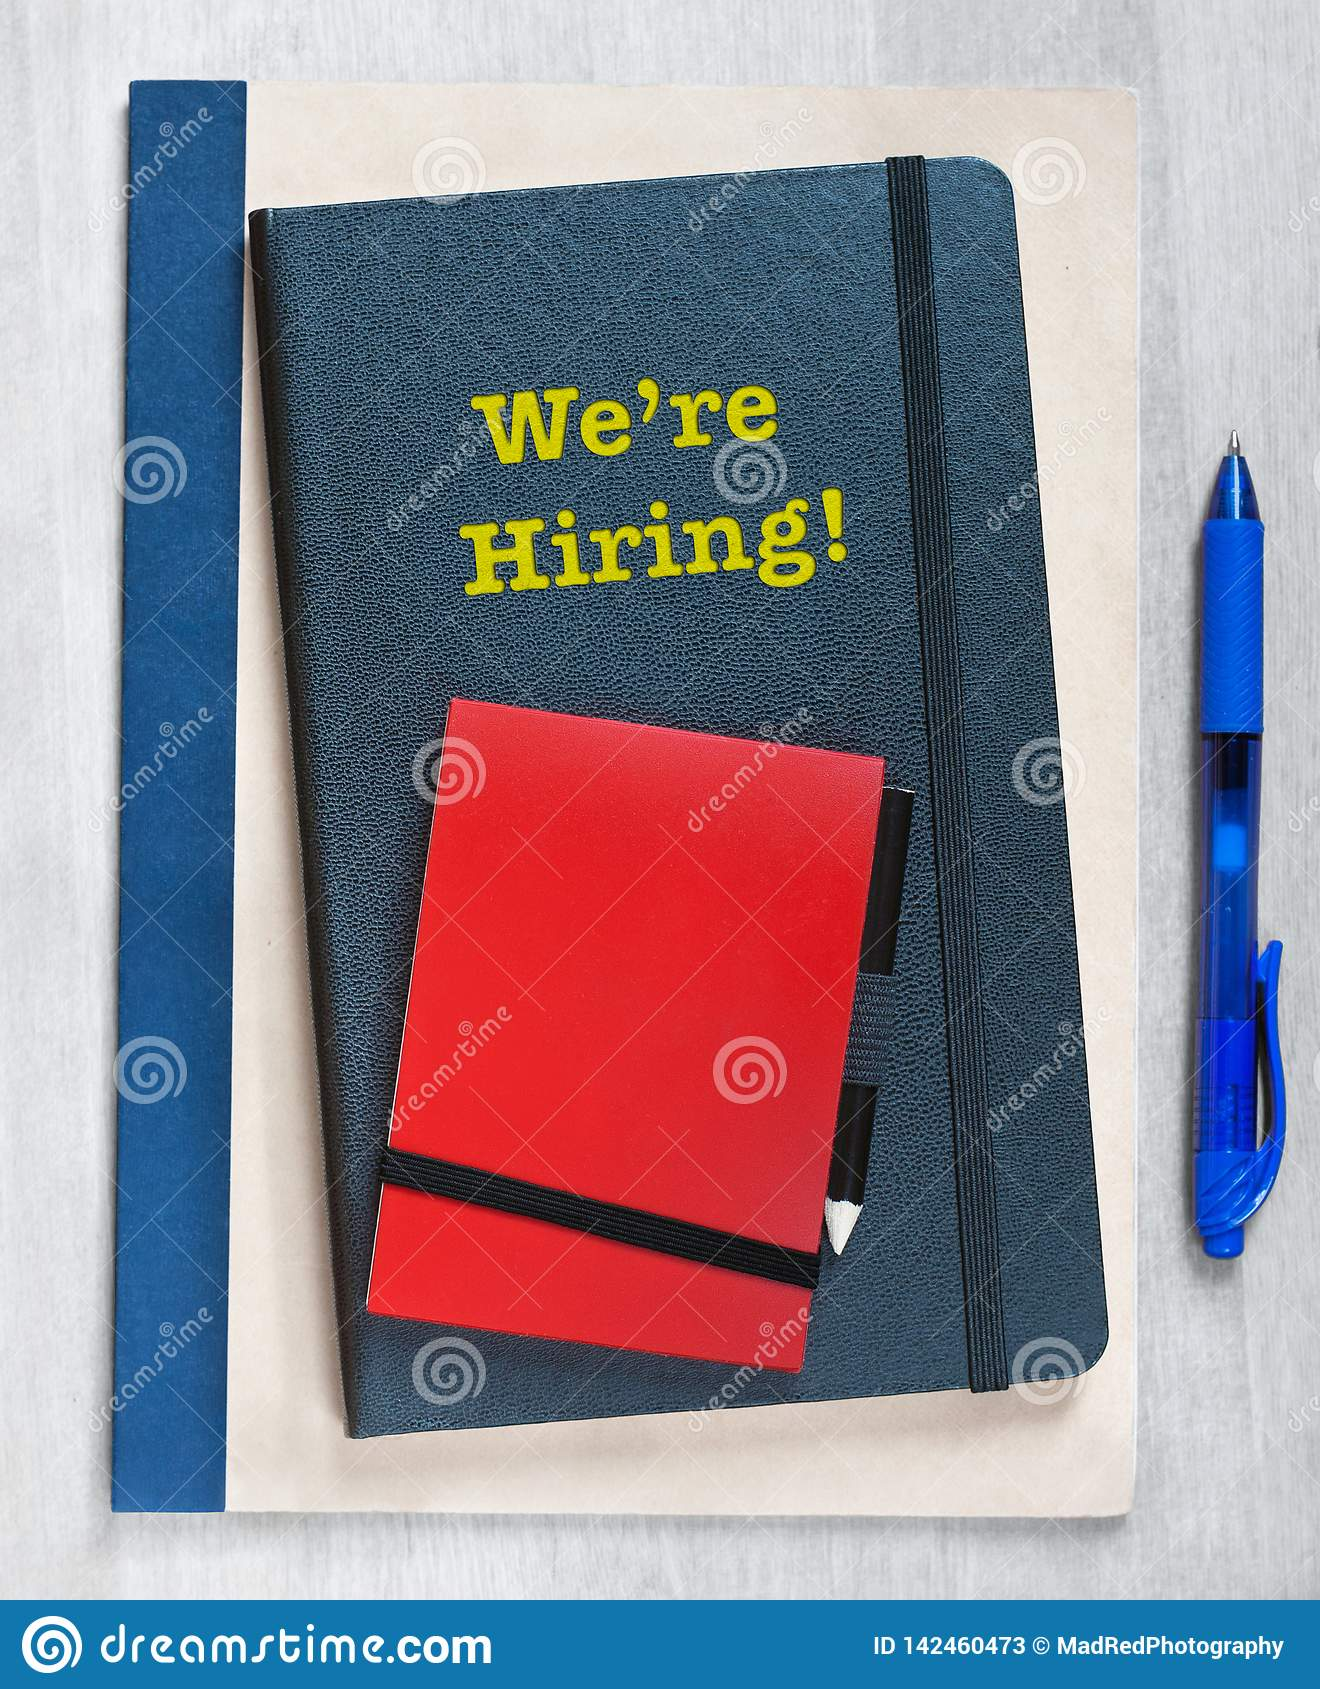 We`re Hiring! Text written on a pile of notebooks, next to a blue pen on a wooden background